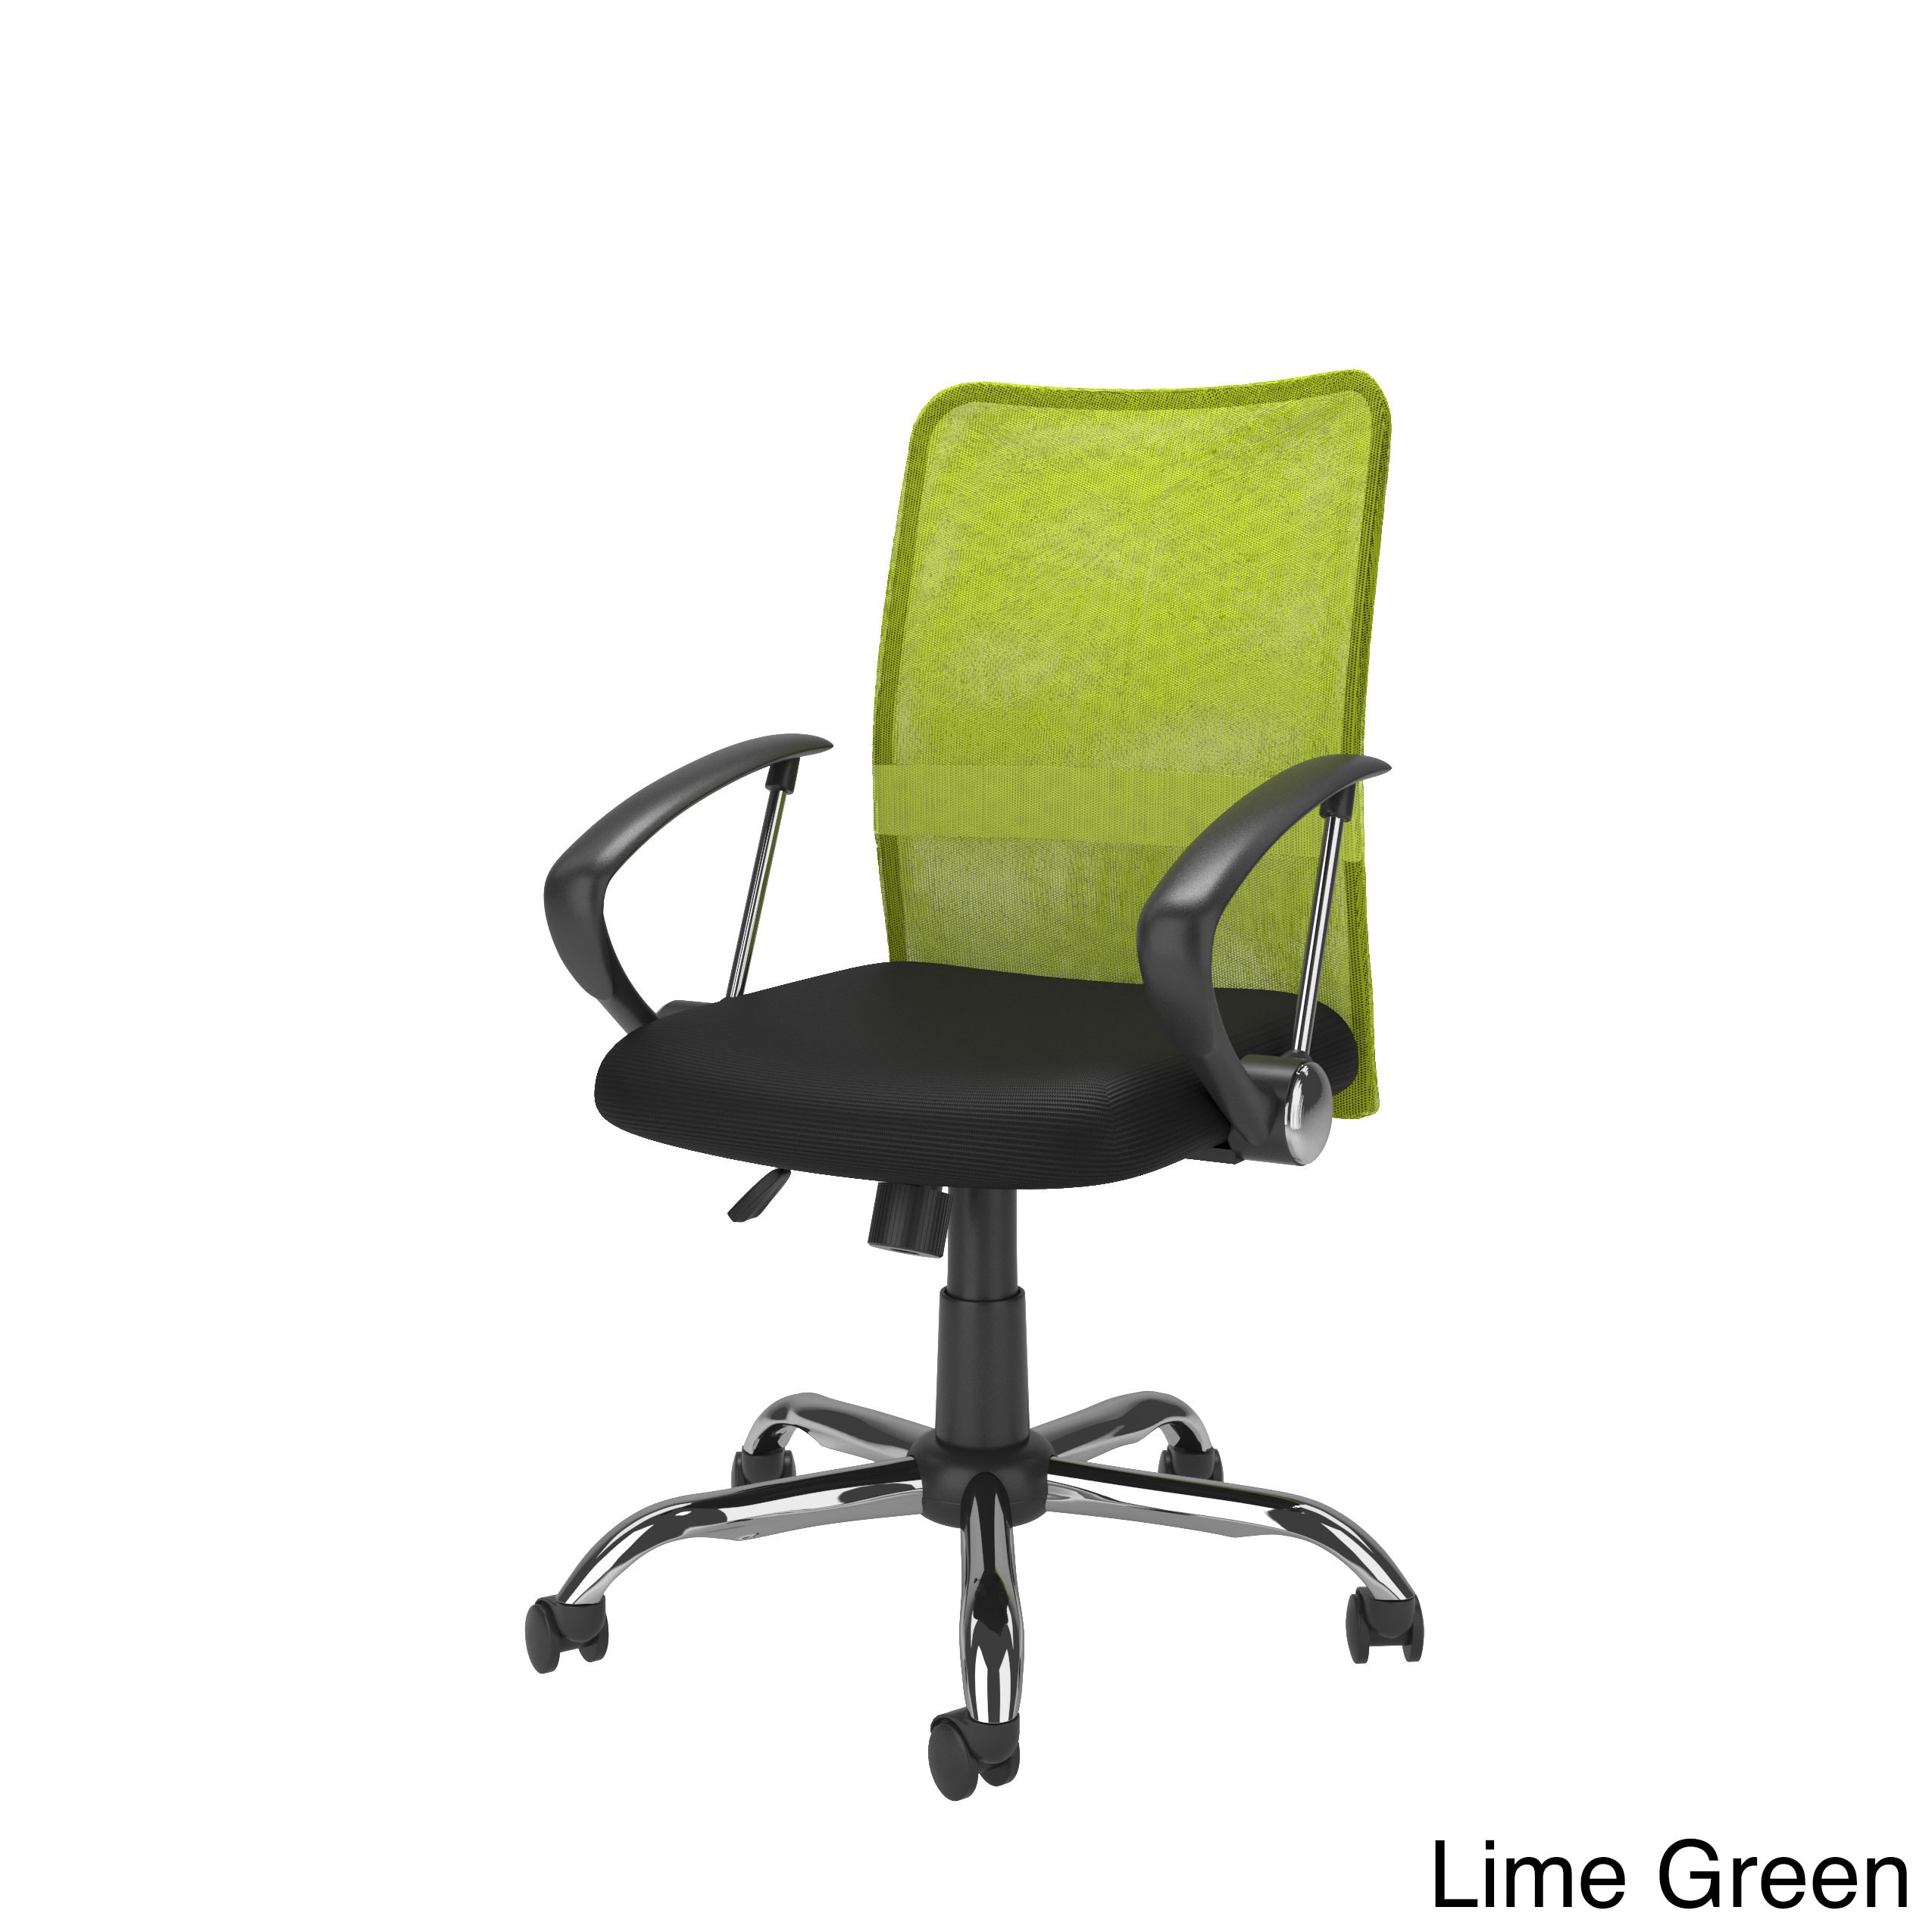 lime green office furniture. CorLiving Workspace Office Chair With Contoured Mesh Back (Option: Lime) Lime Green Furniture .